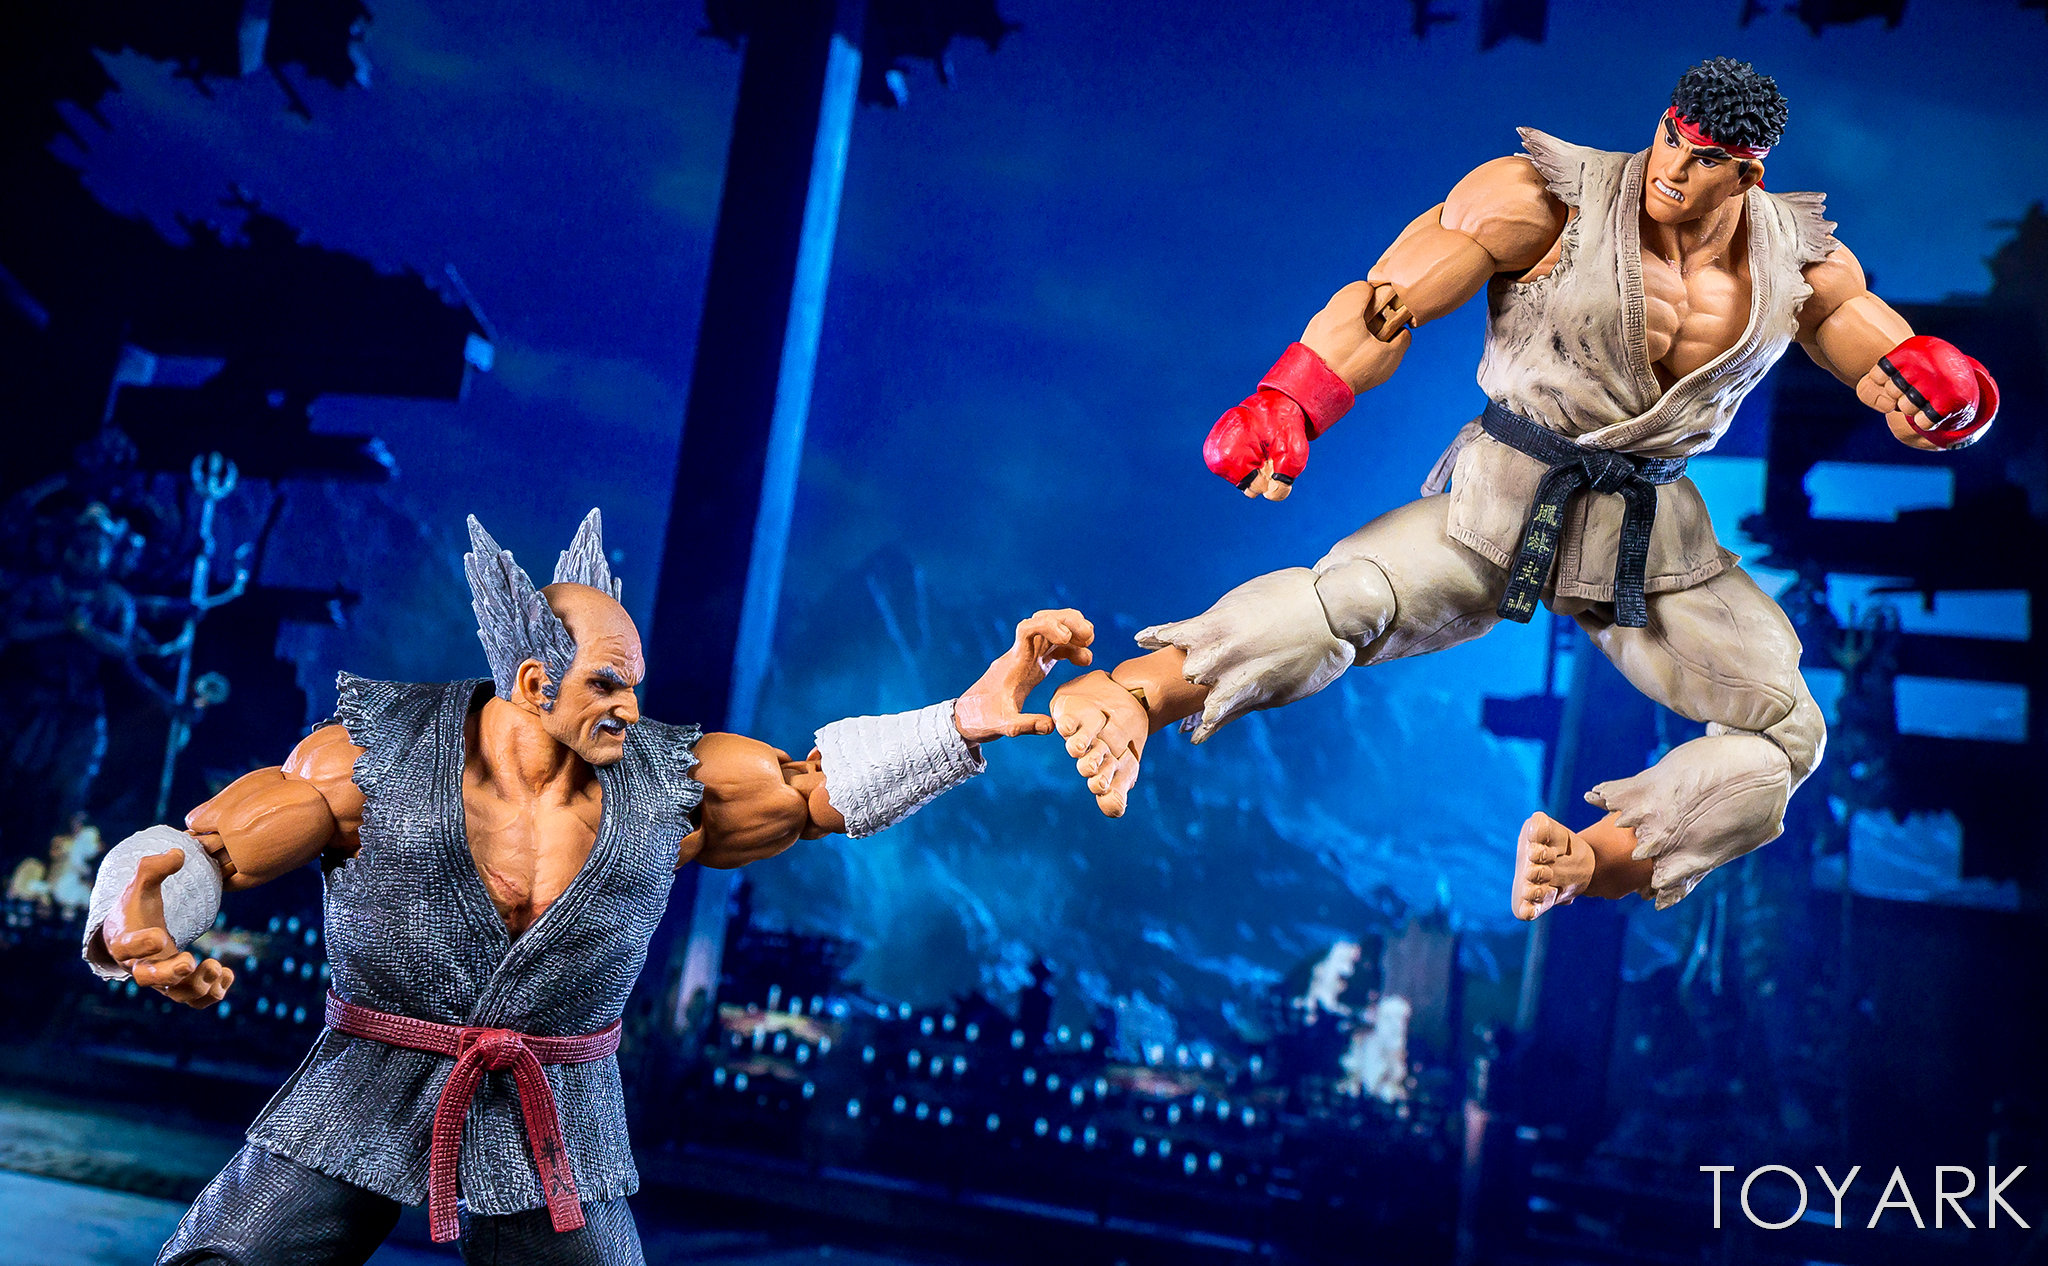 https://news.toyark.com/wp-content/uploads/sites/4/2018/05/Storm-Heihachi-Figure-035.jpg